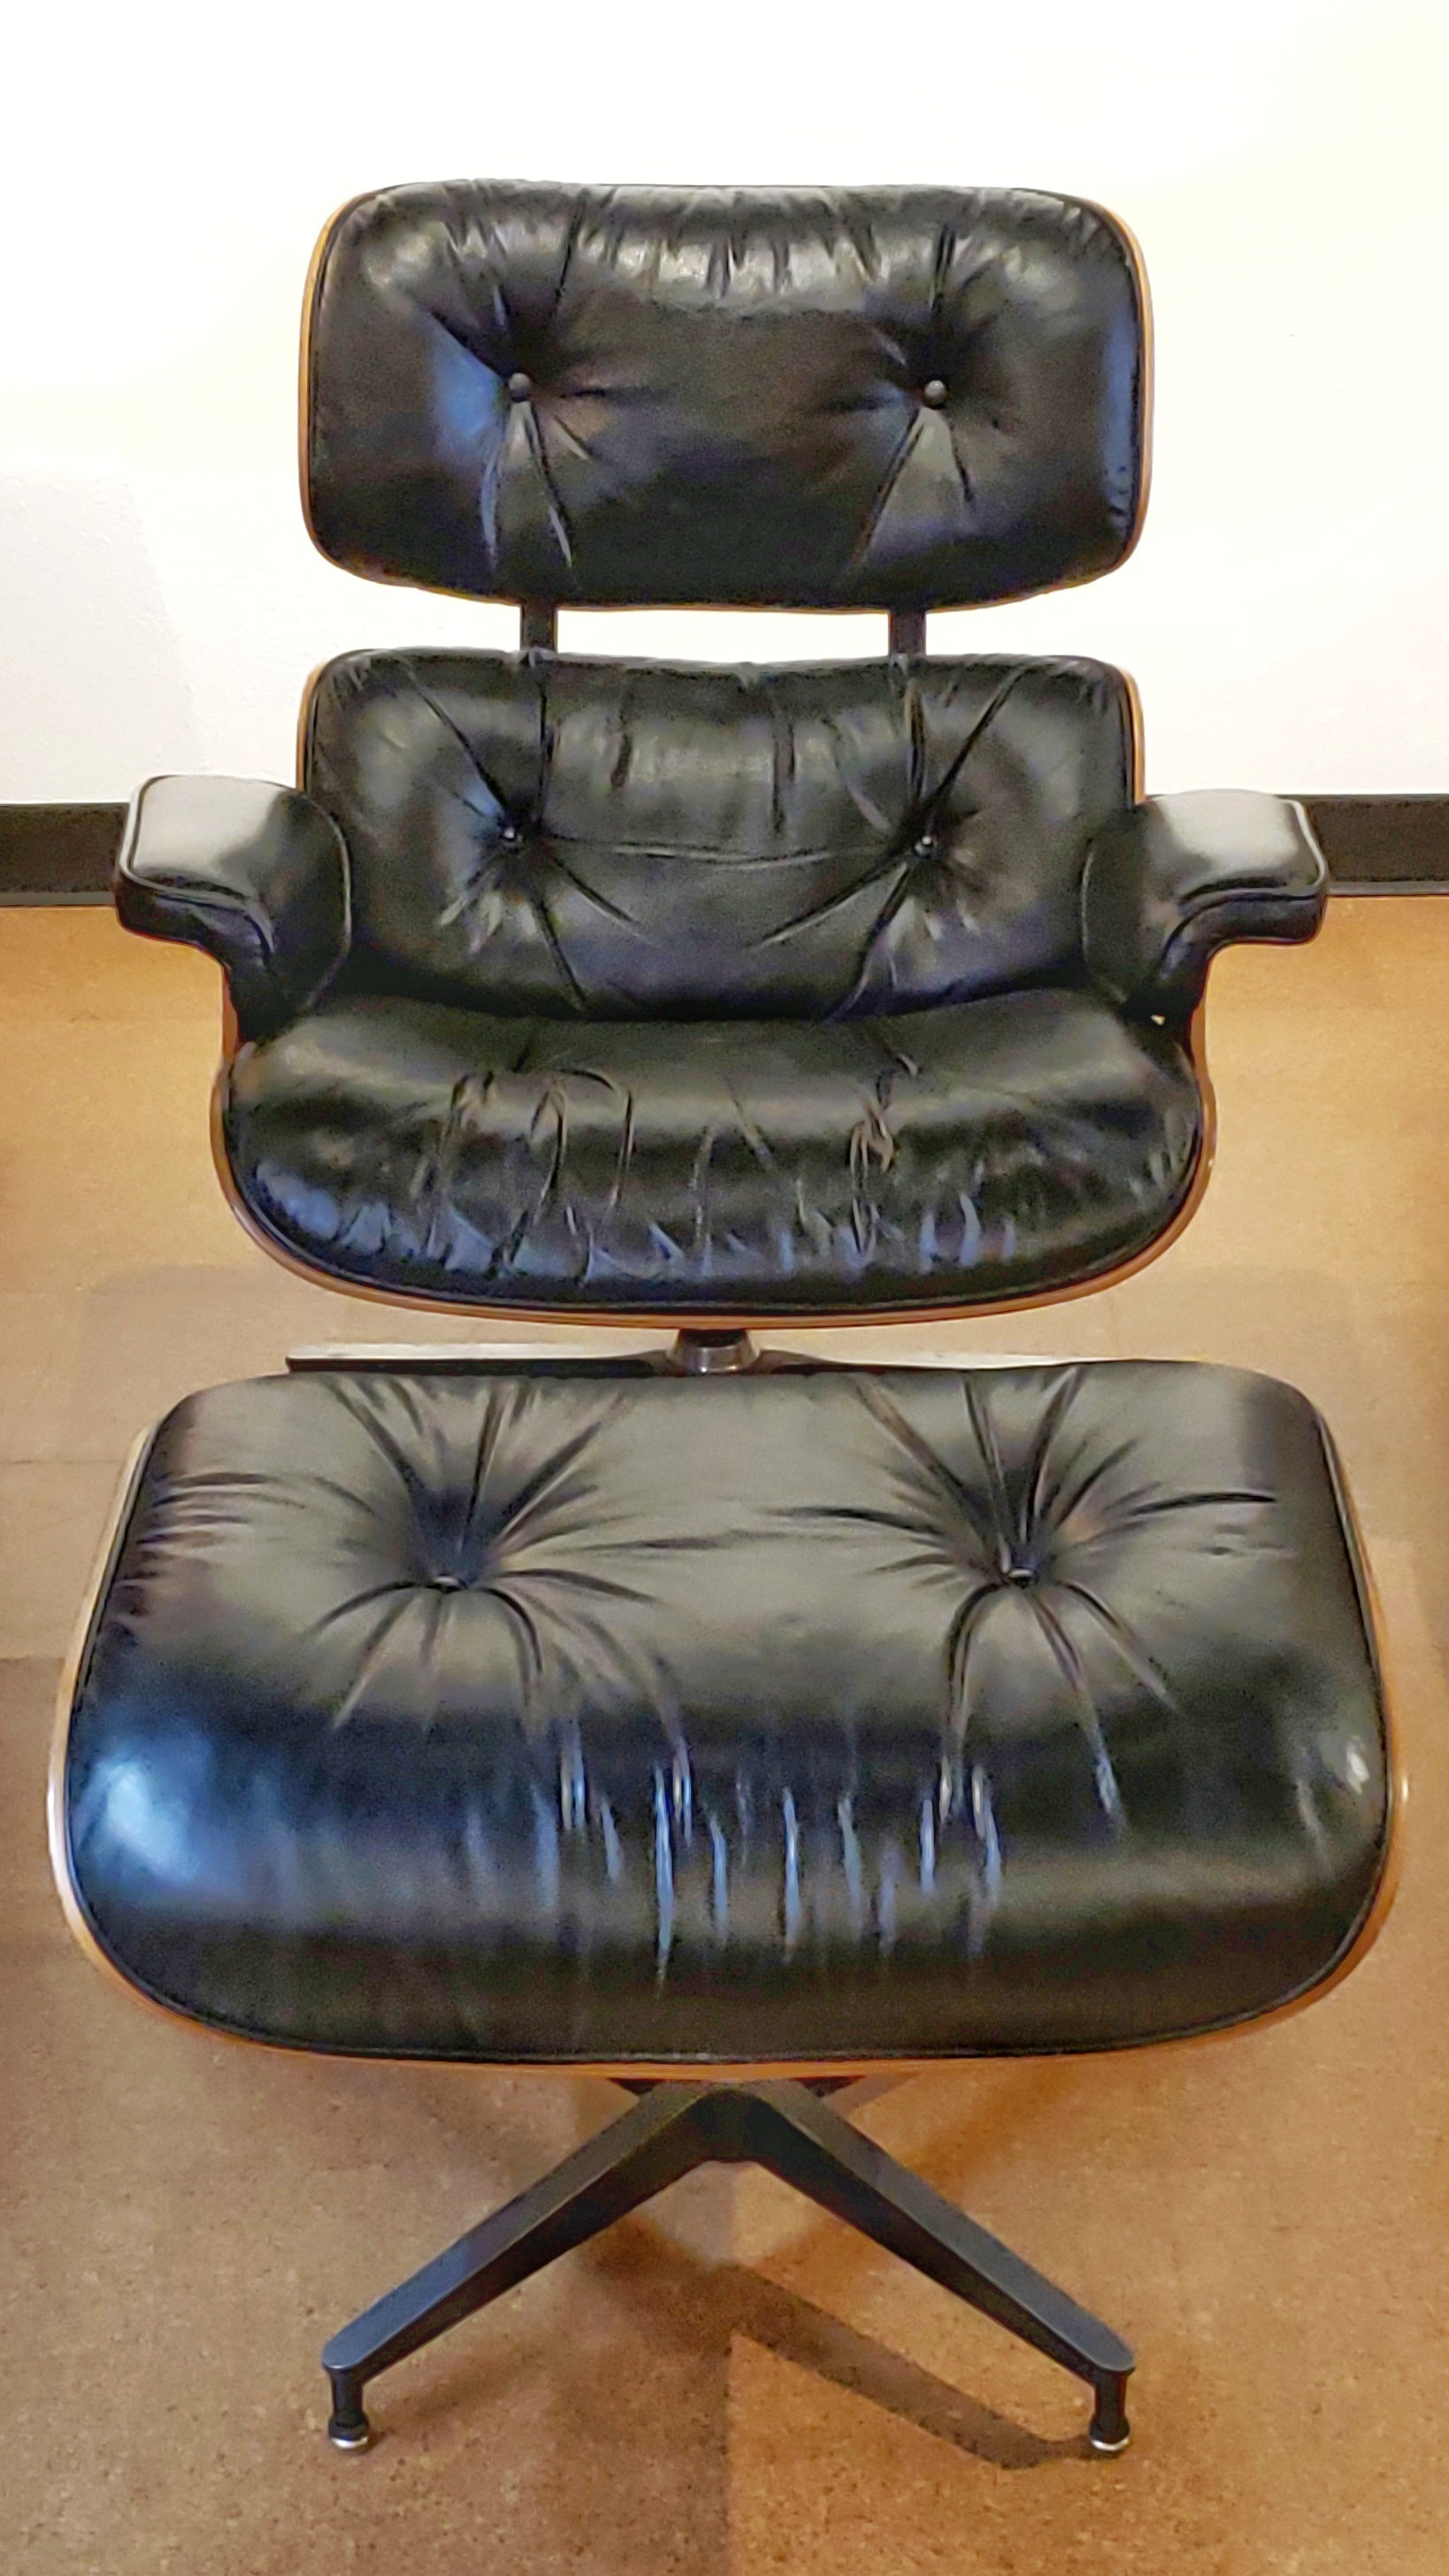 Magnificent Charles Ray Eames Lounge Chair 670 With Ottoman 671 Creativecarmelina Interior Chair Design Creativecarmelinacom